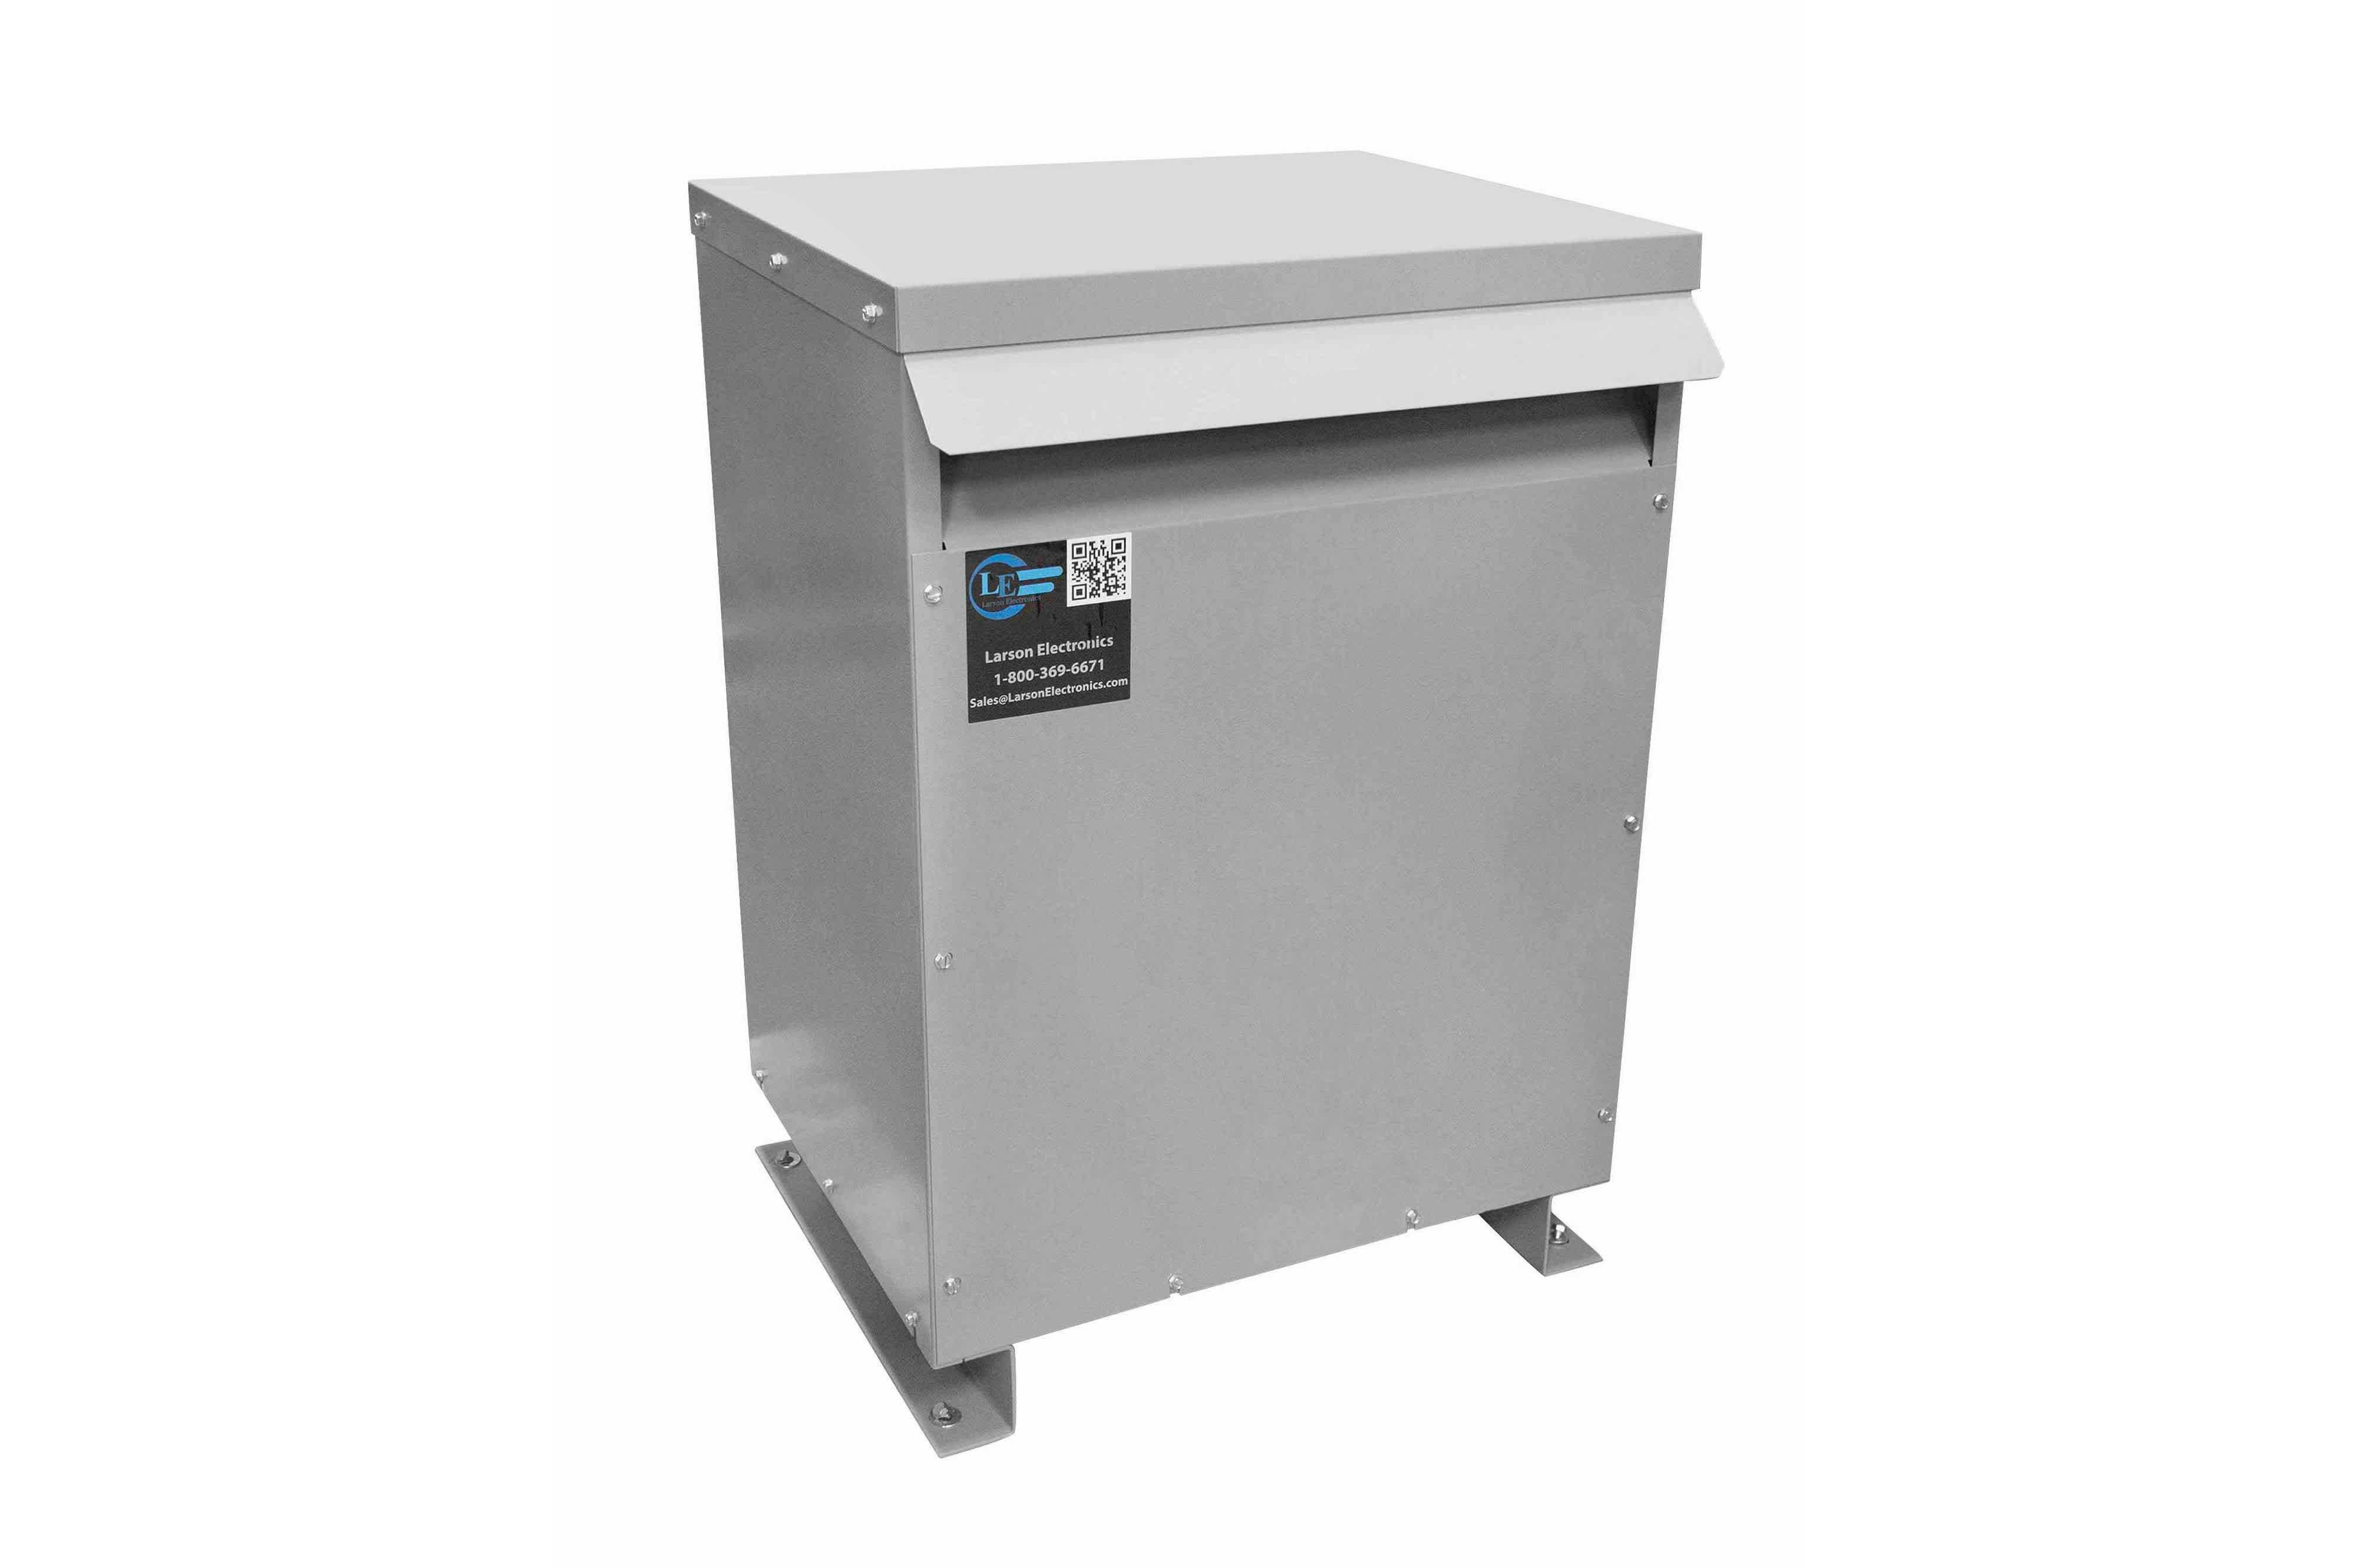 200 kVA 3PH DOE Transformer, 575V Delta Primary, 240V/120 Delta Secondary, N3R, Ventilated, 60 Hz